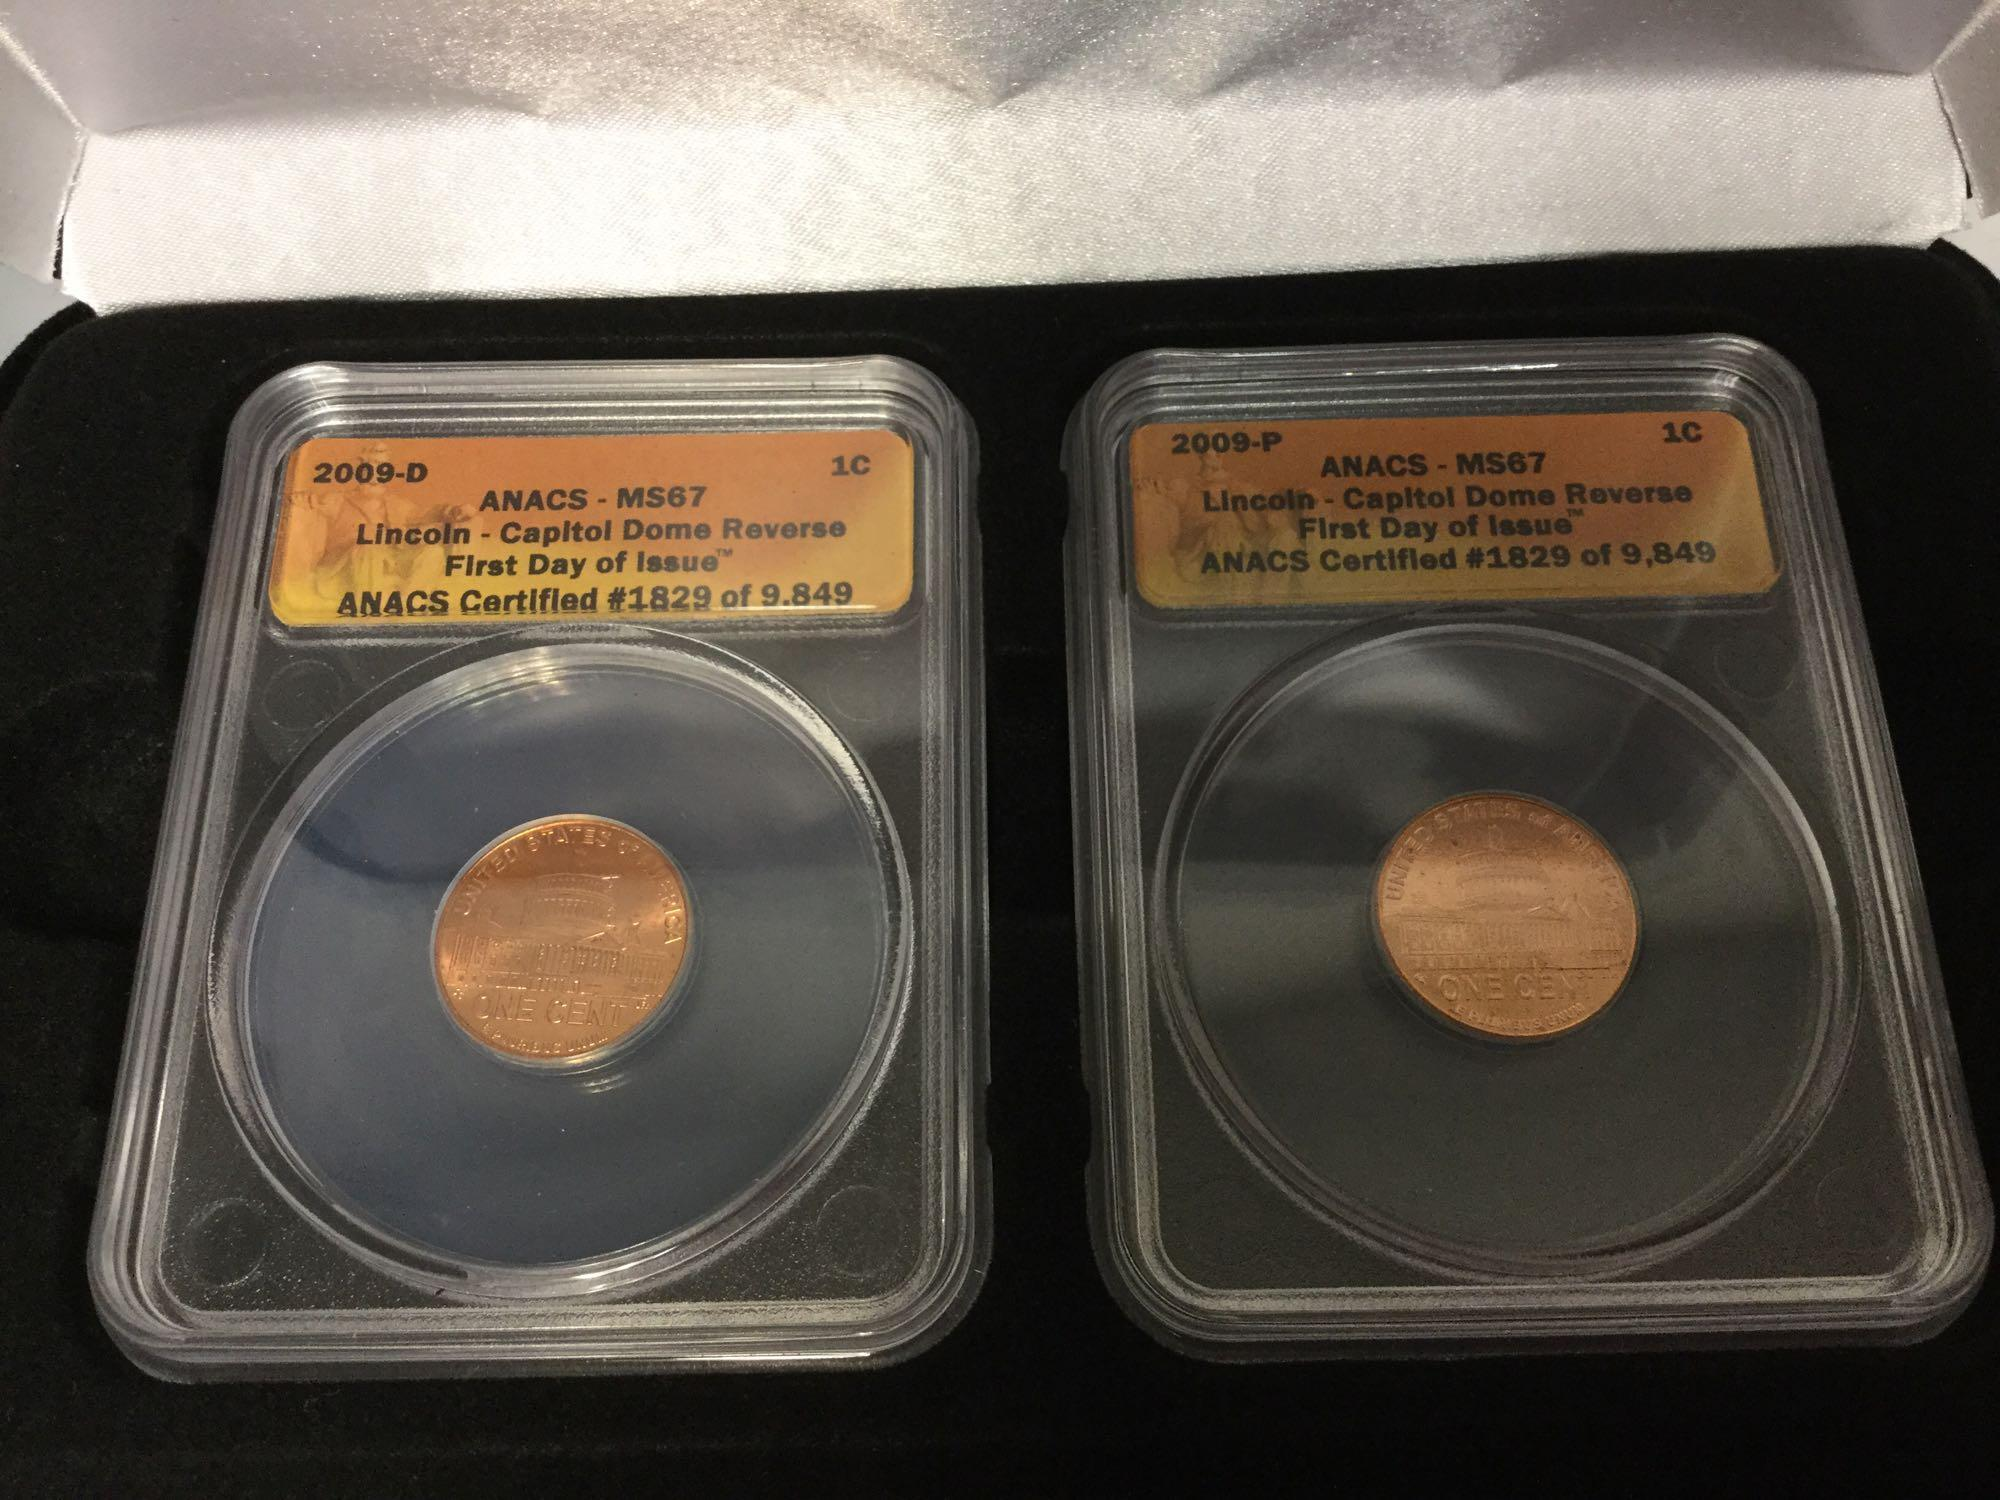 Lot 38 - Lot of 2 in one case - US Mint - 2009 penny